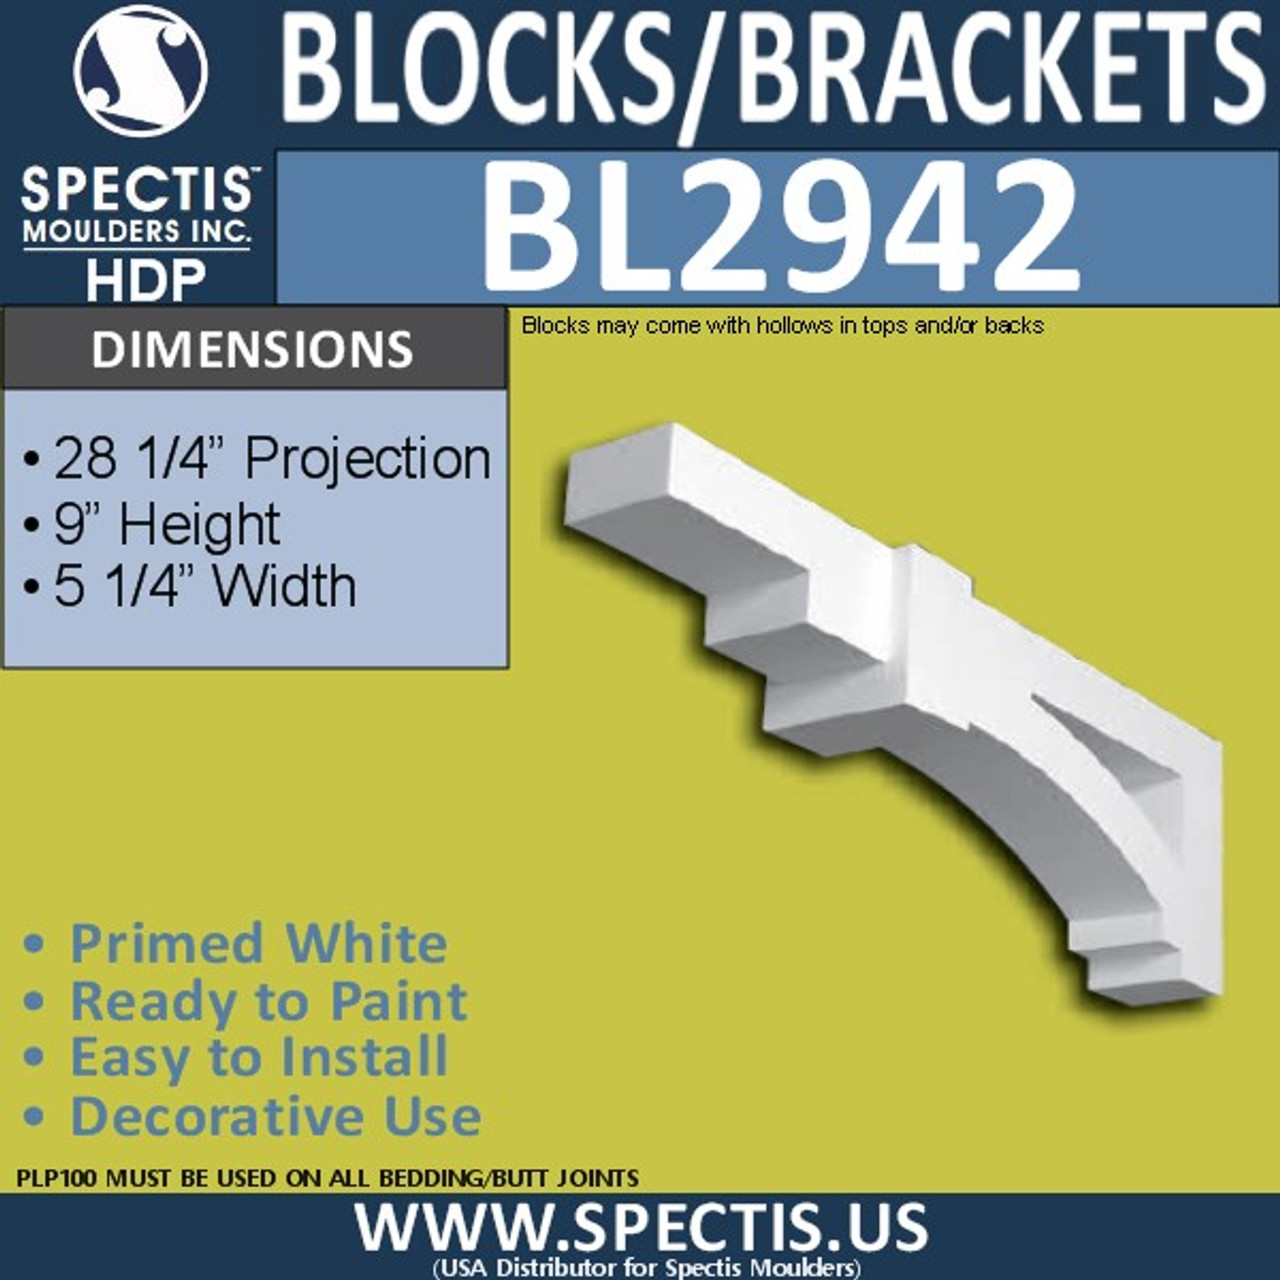 "BL2942 Eave Block or Bracket 5.25""W x 28.25""H x 9"" P"